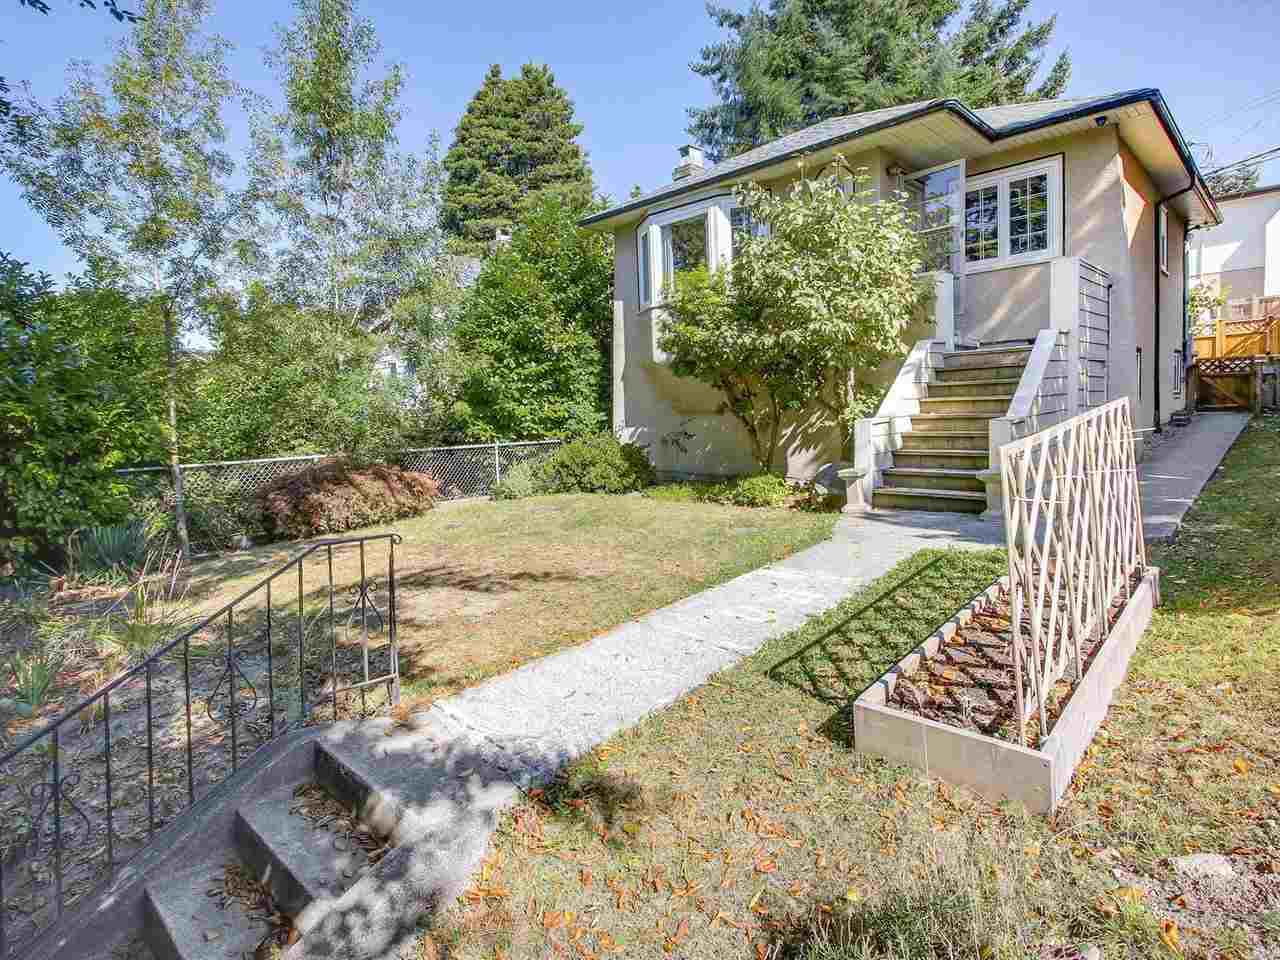 Main Photo: 4384 NANAIMO Street in Vancouver: Collingwood VE House for sale (Vancouver East)  : MLS® # R2202934